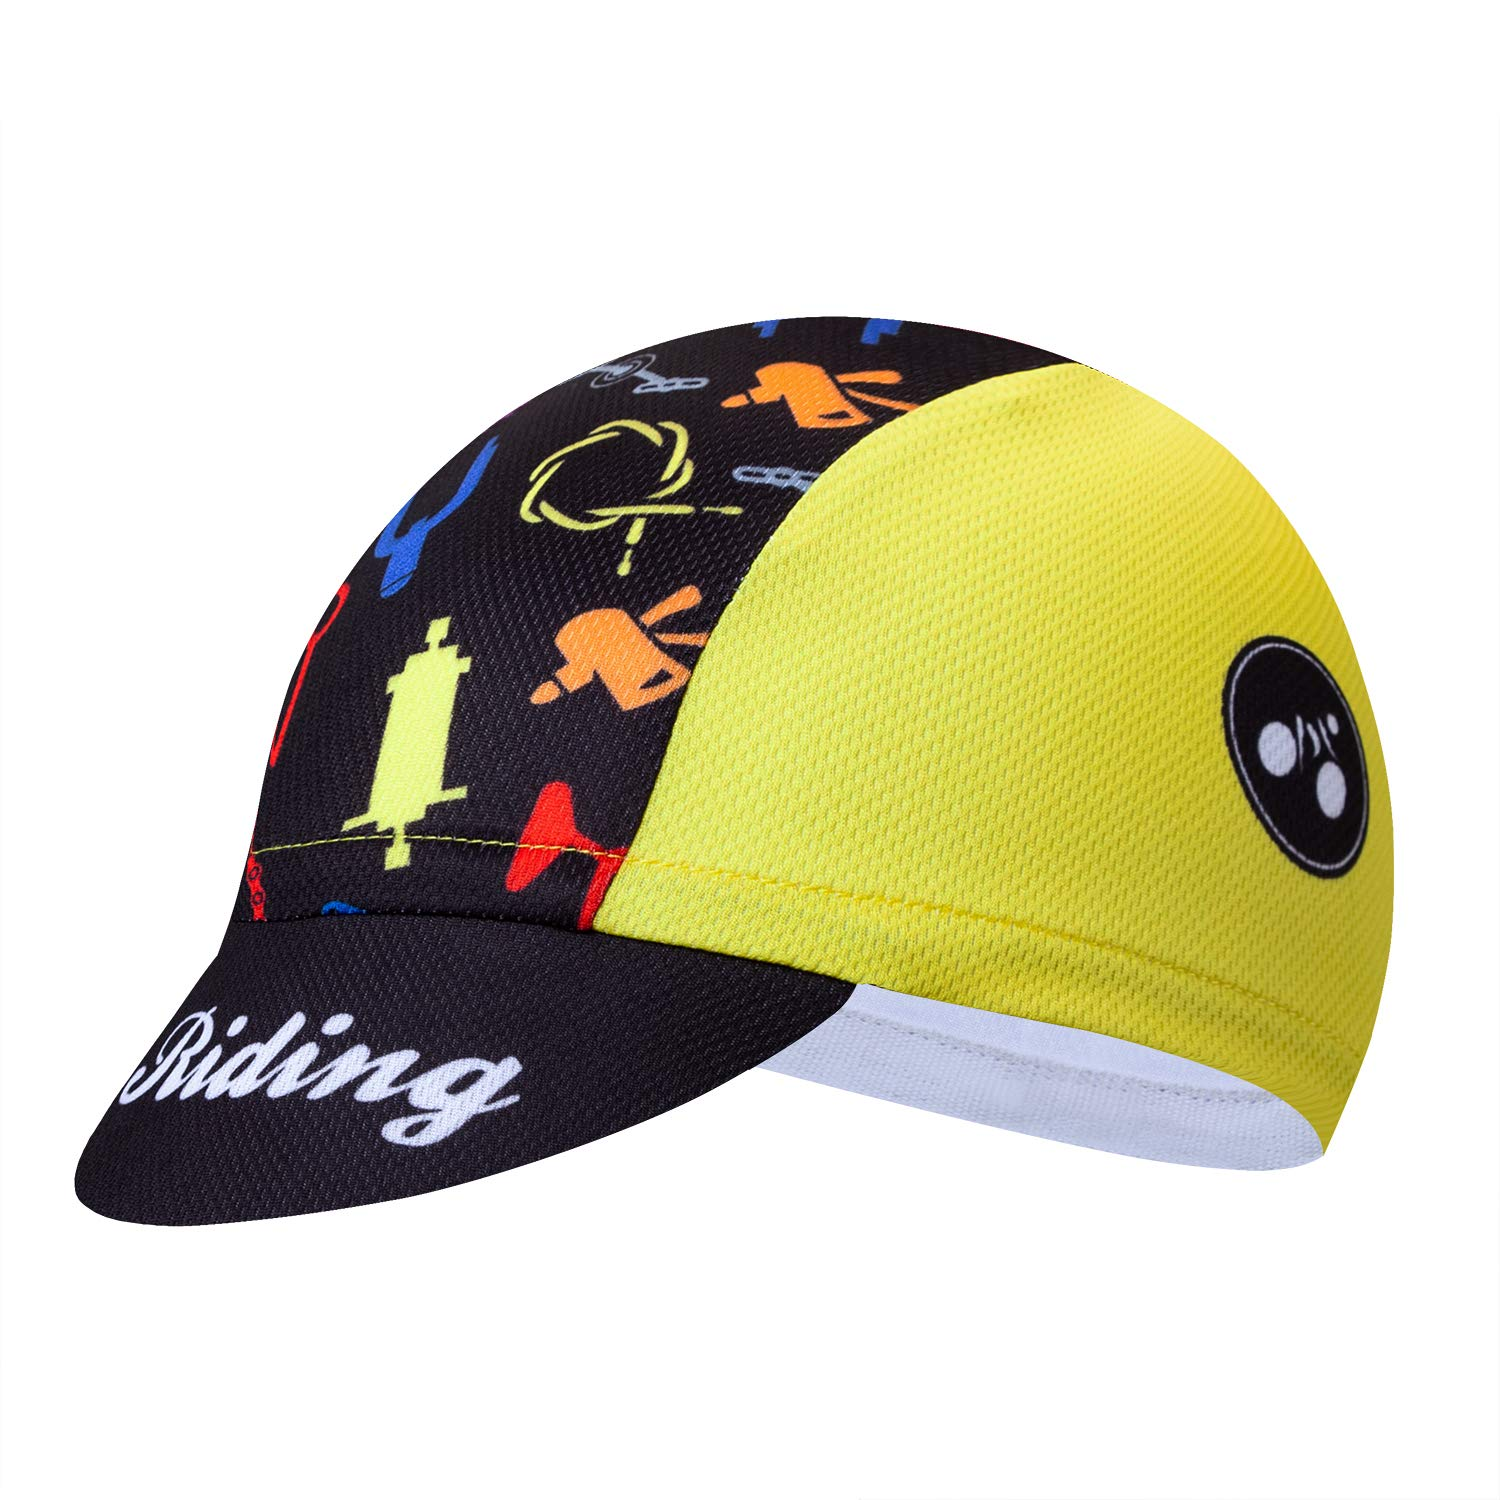 JPOJPO Cycling Cap Men Women Bike Hat Helmet Inside redorange